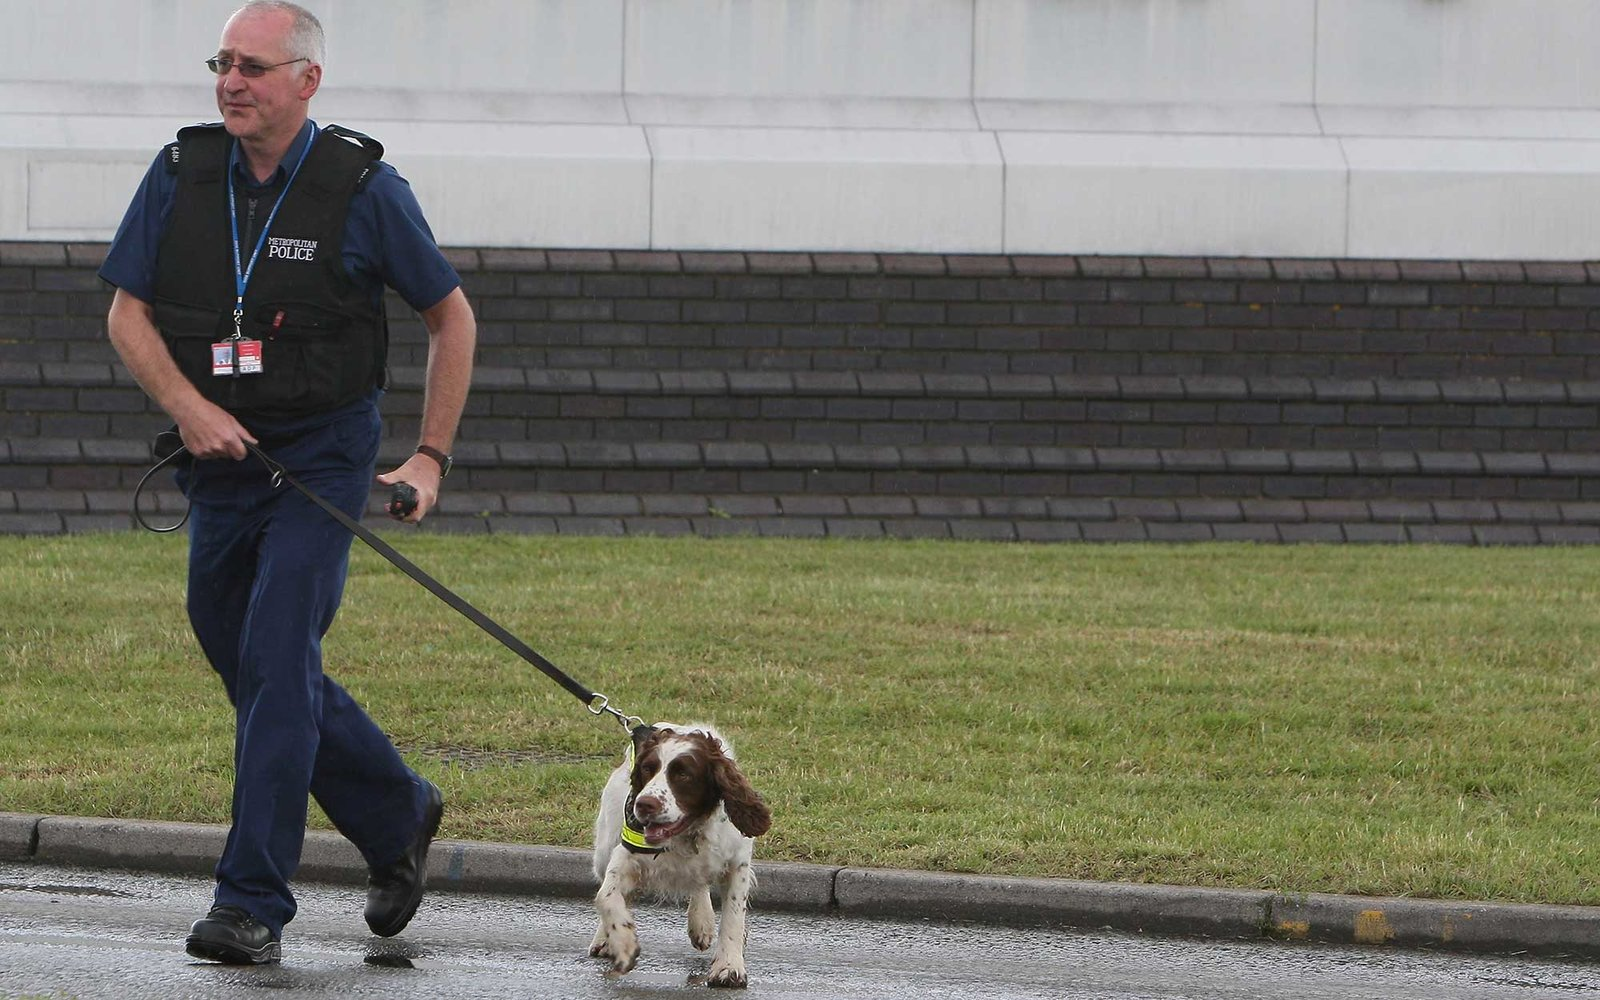 LONDON - JULY 03:  A police officer and sniffer dog head towards Terminal 4, Heathrow Airport as evacuated passengers depart on July 3, 2007 in London, England. Officials at Heathrow Terminal 4 have confirmed they have a suspect bag which has caused major